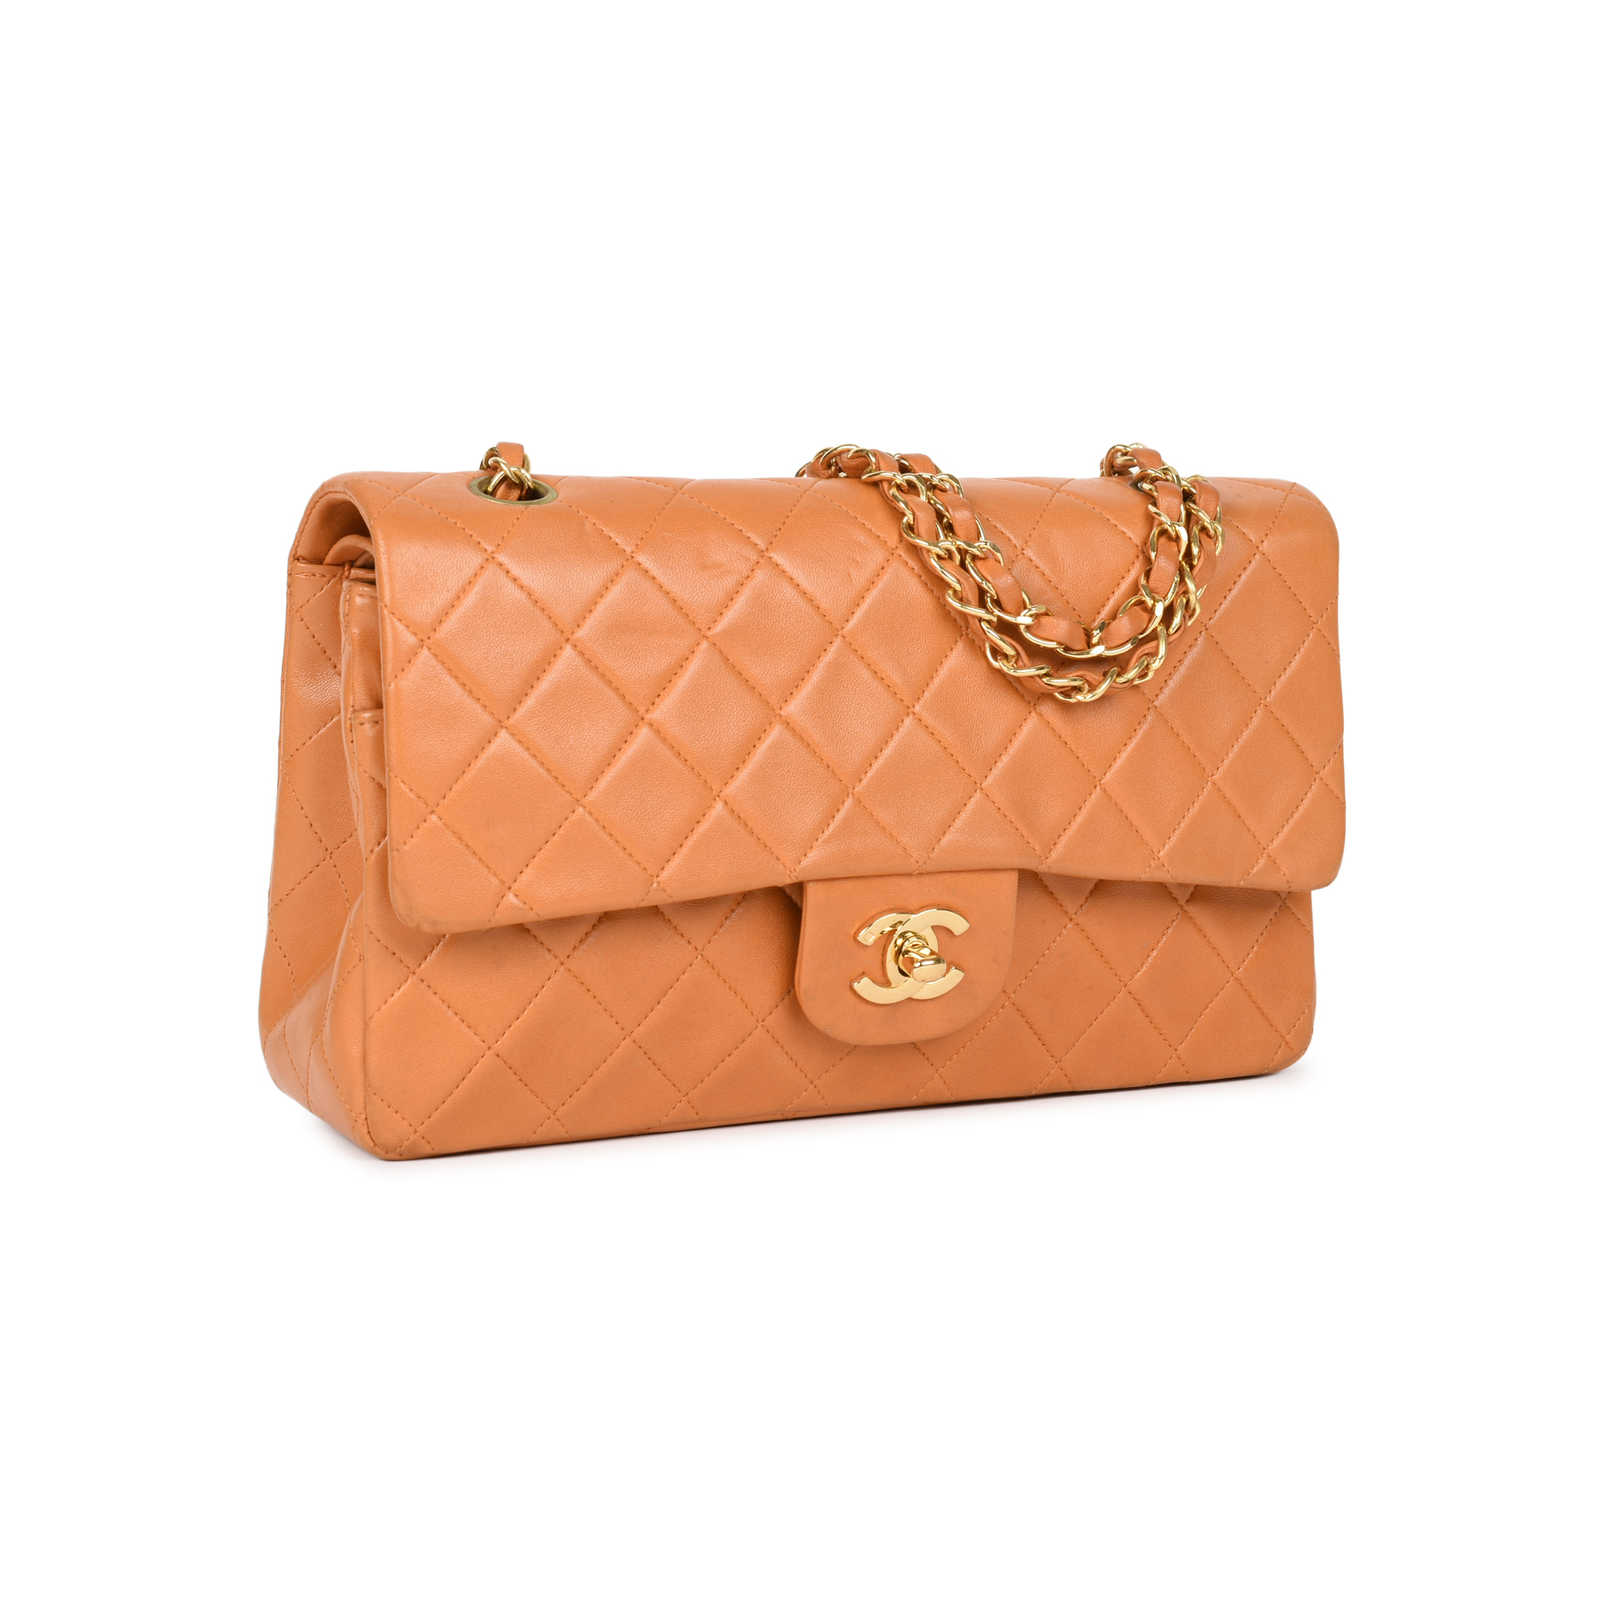 259fe84f8aad ... Authentic Second Hand Chanel Orange Medium Classic Flap Bag  (PSS-051-00380) ...